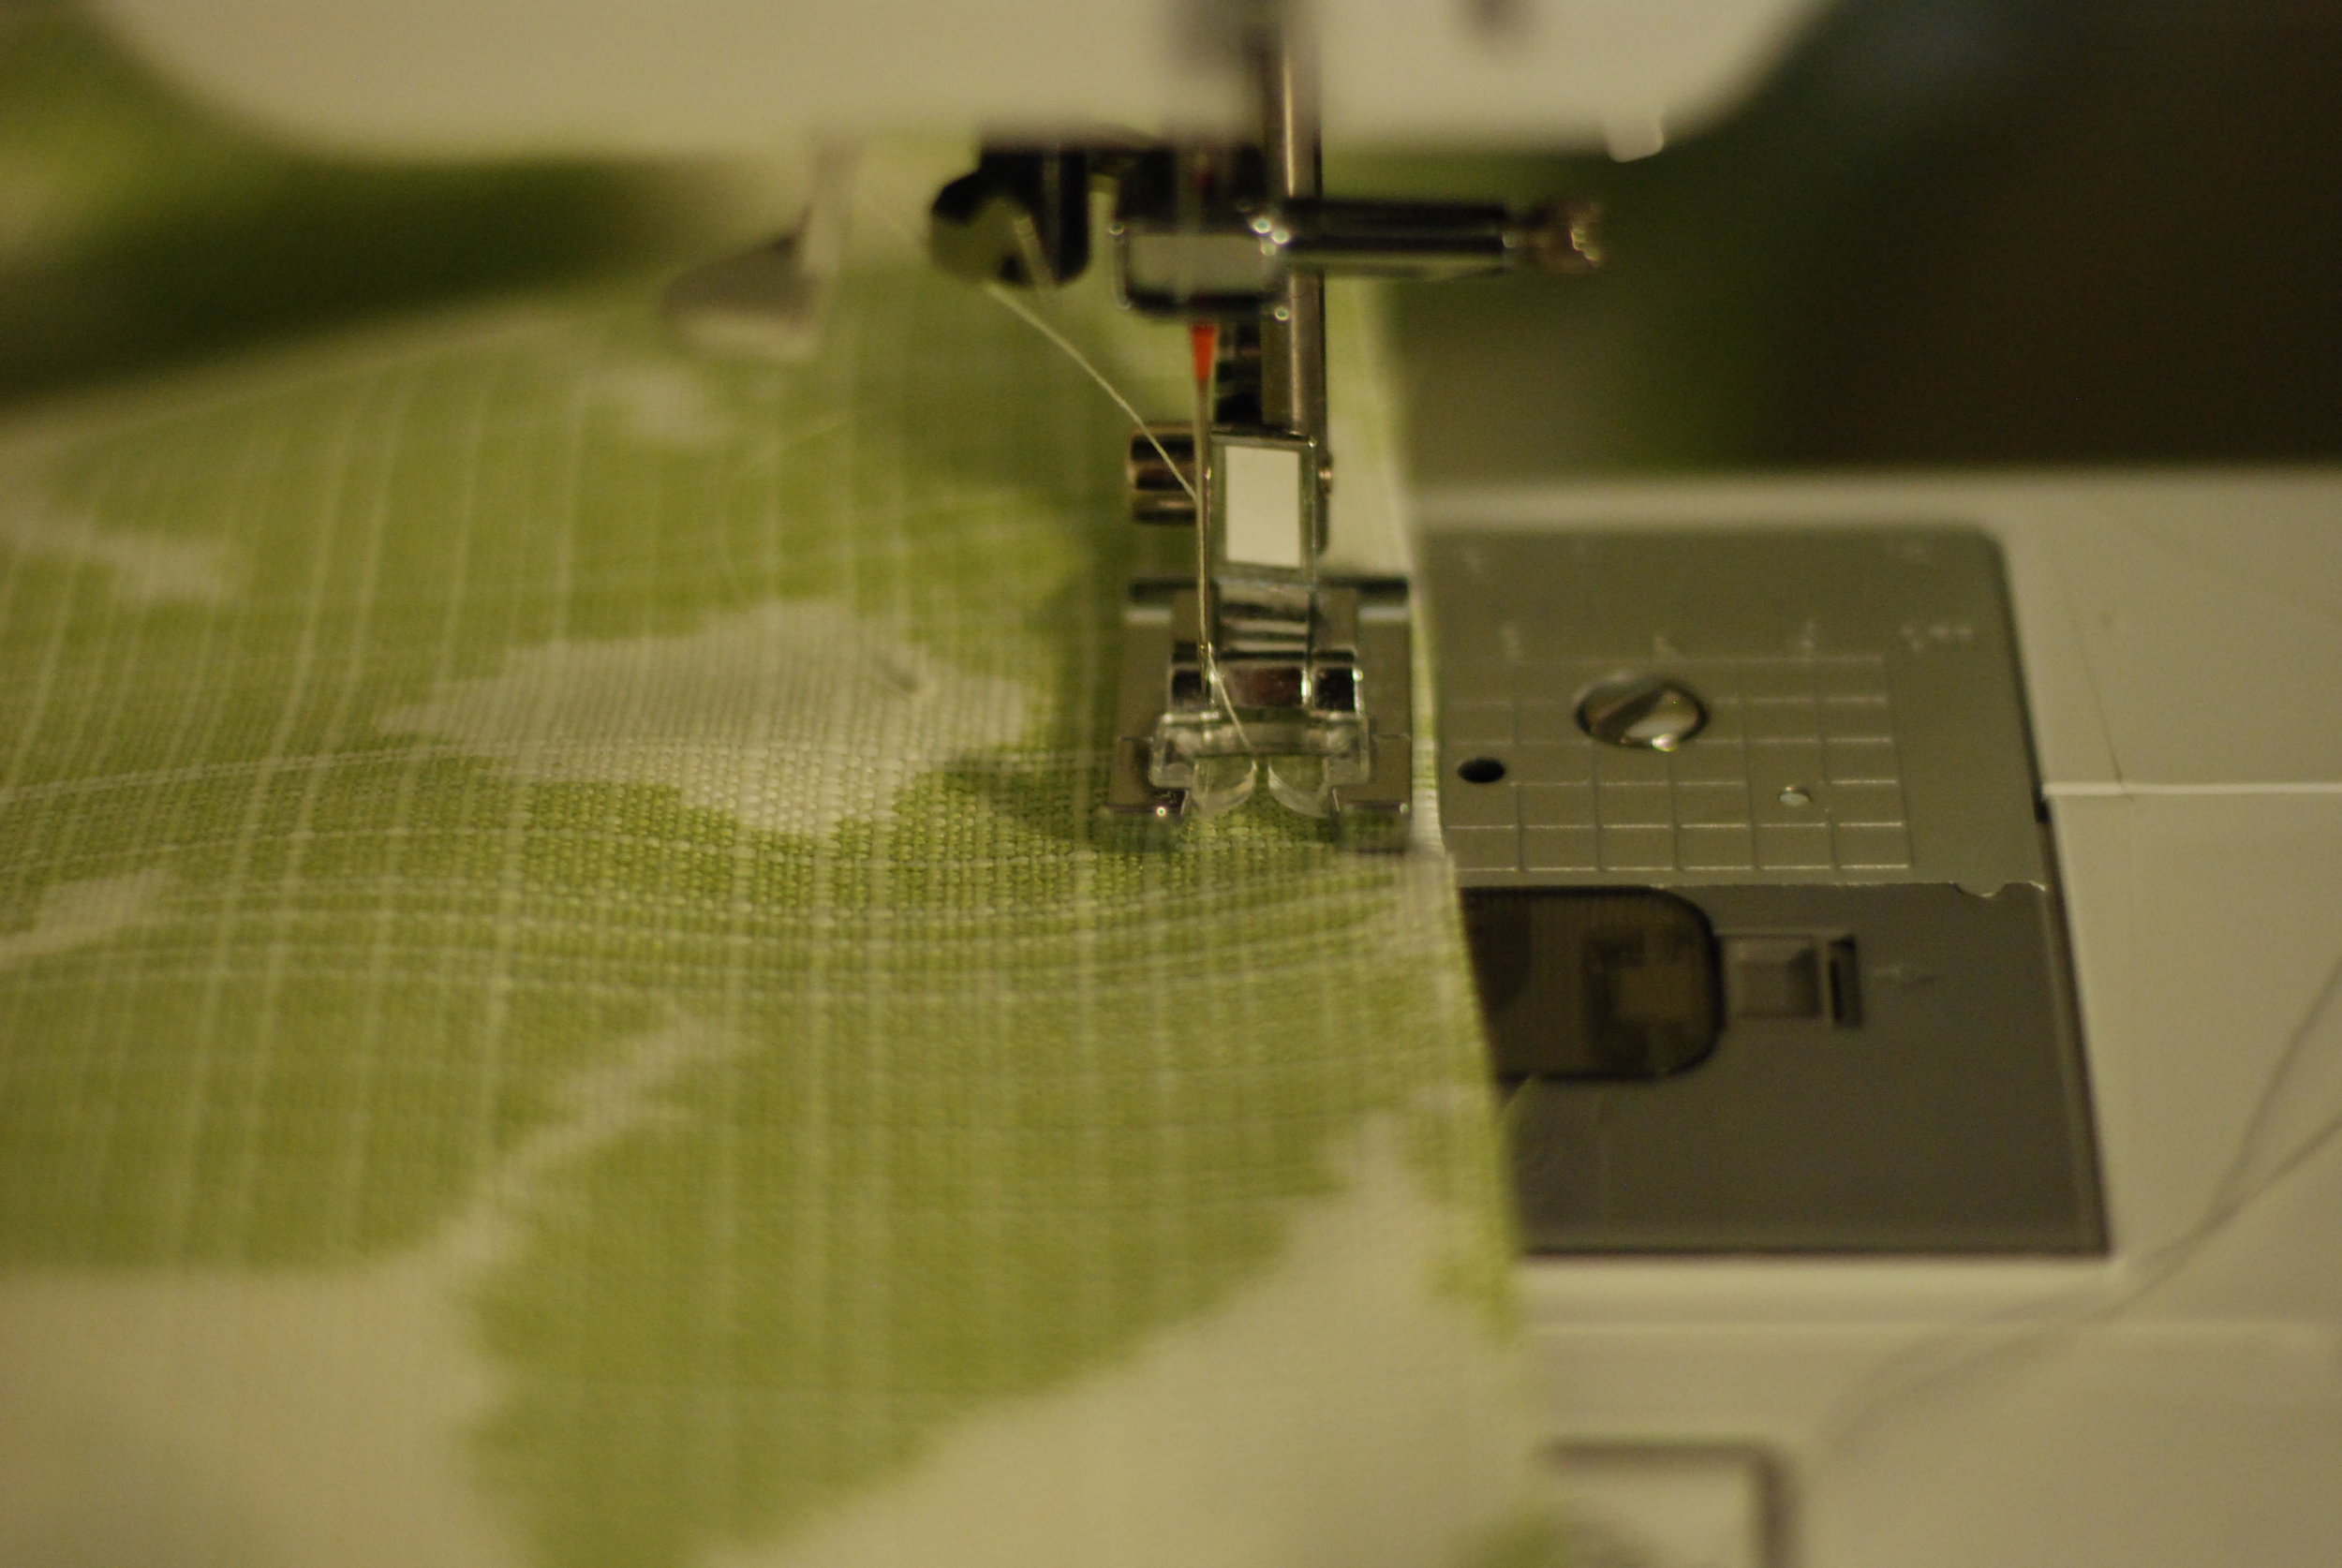 Sew a 1/2' on both sides of the pillow and leave an 8-10 inch opening at the bottom.